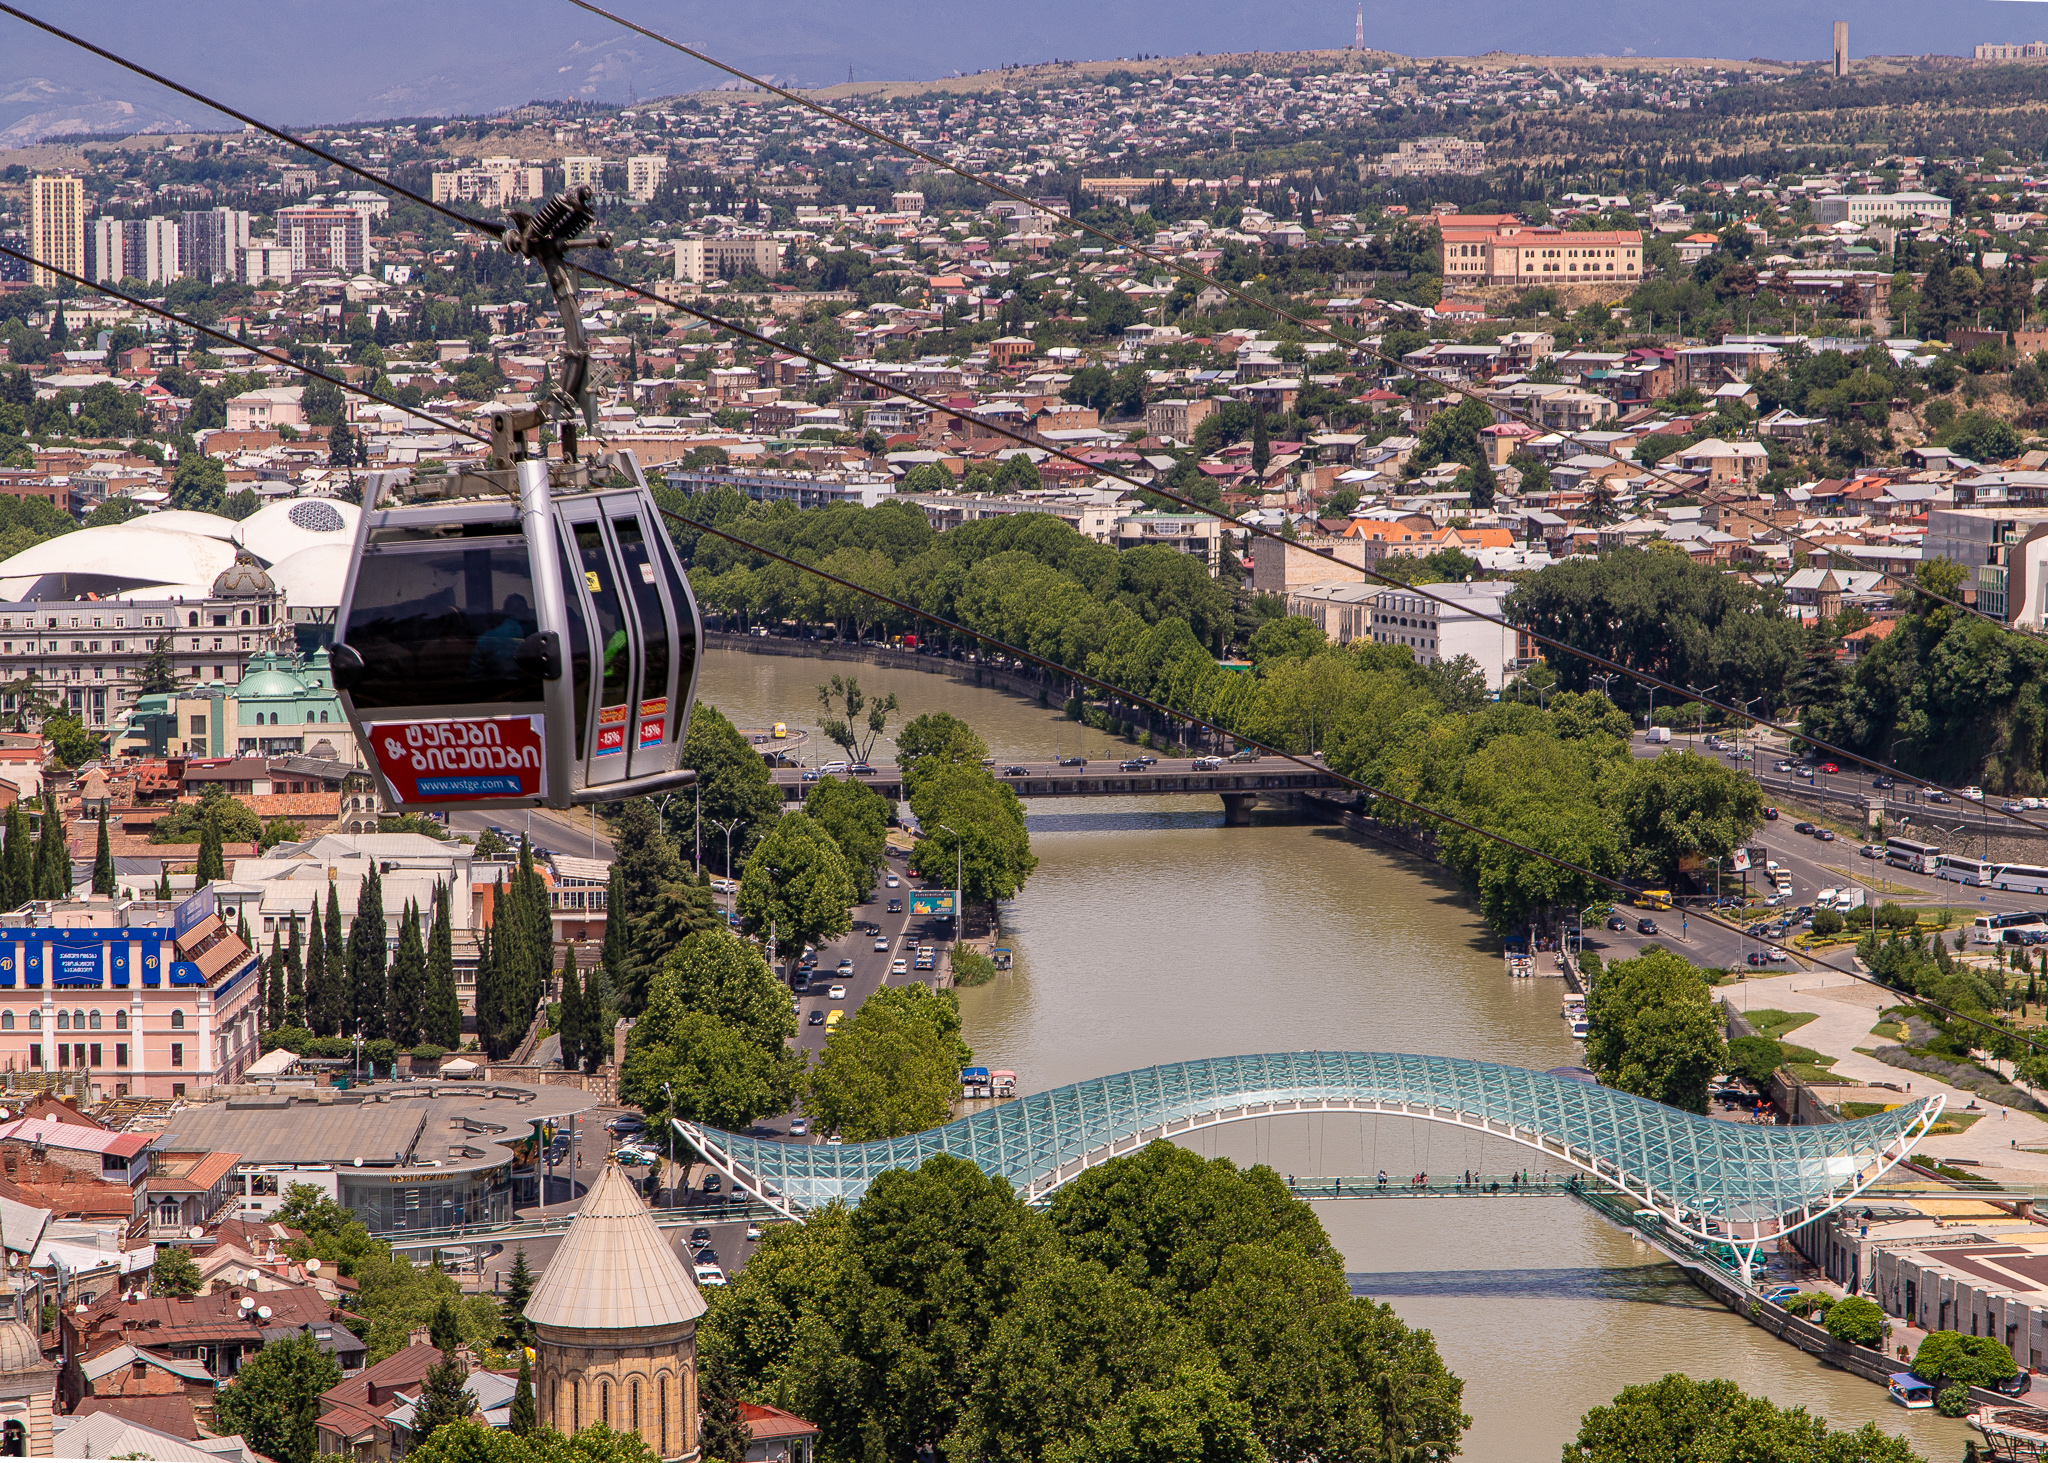 The Aerial Tramway floating above the Bridge of Peace